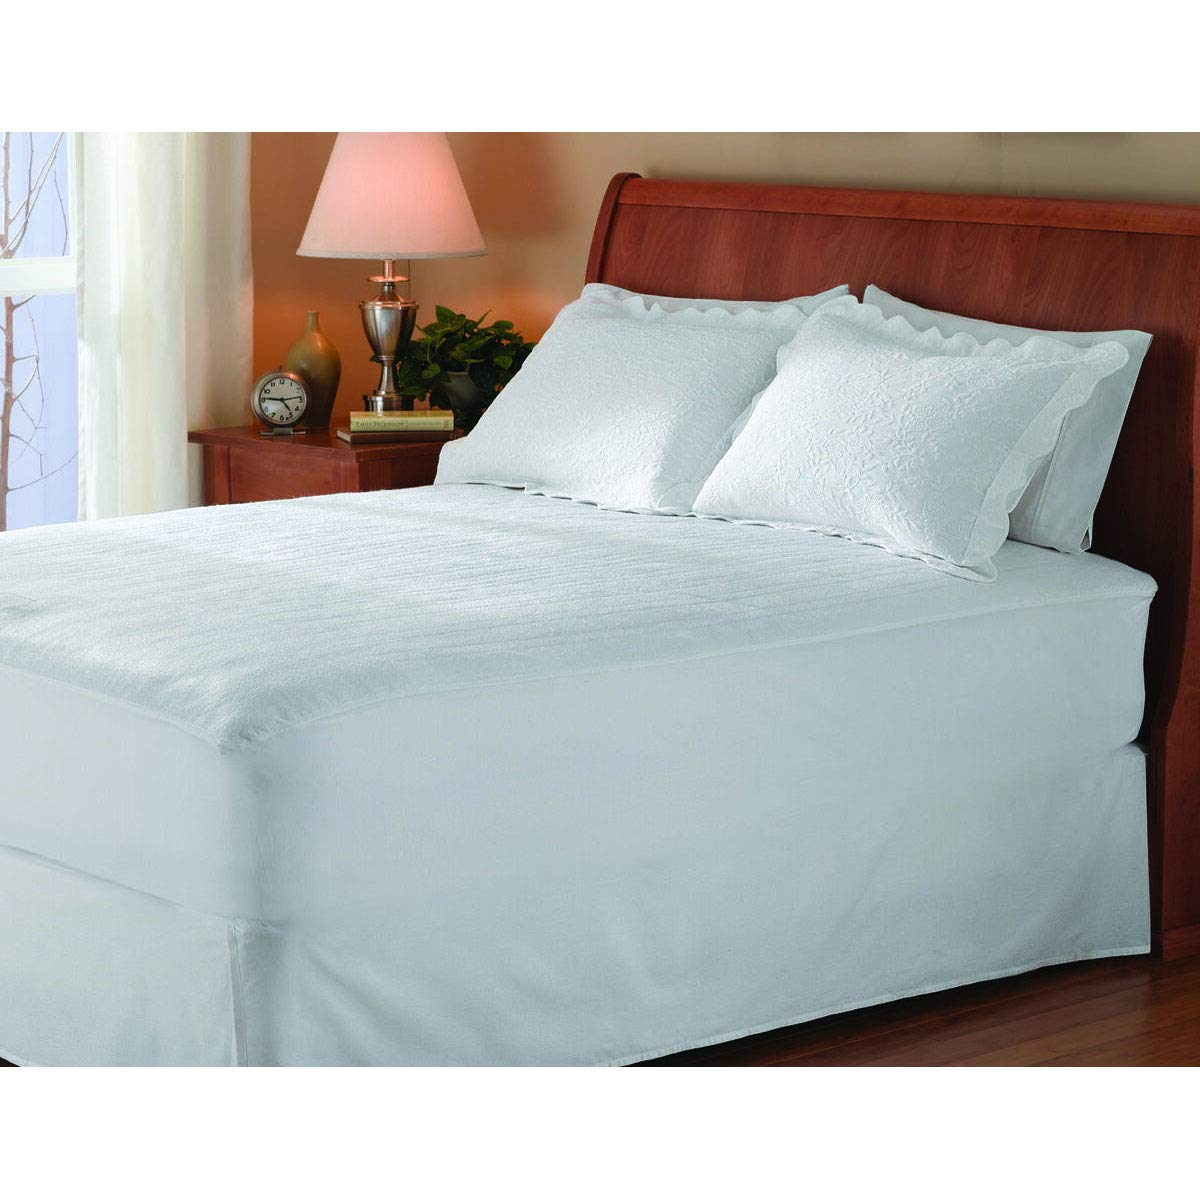 Sunbeam Year Round Heated Fitted Mattress Pad with 5 Heat Settings (Full Size)